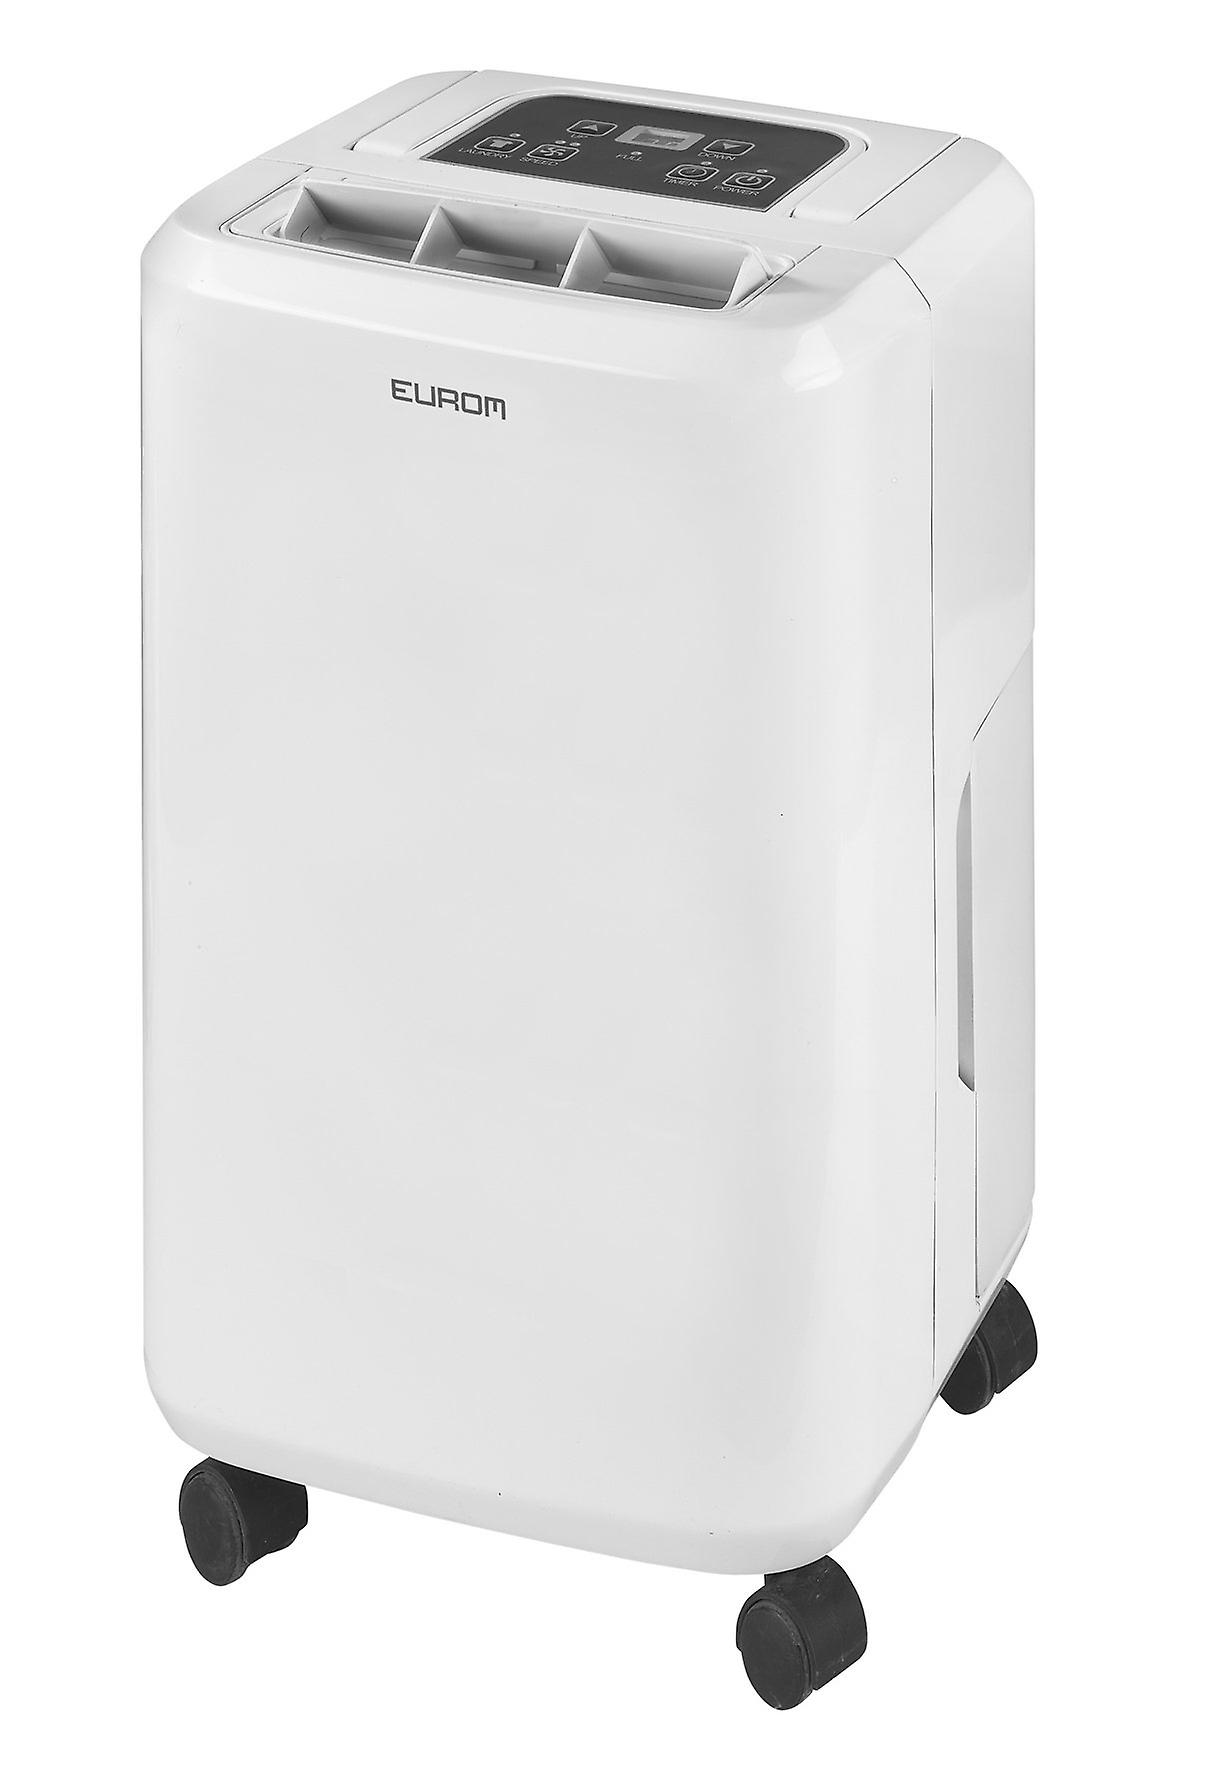 Eurom Dry Best 20-Dehumidifier